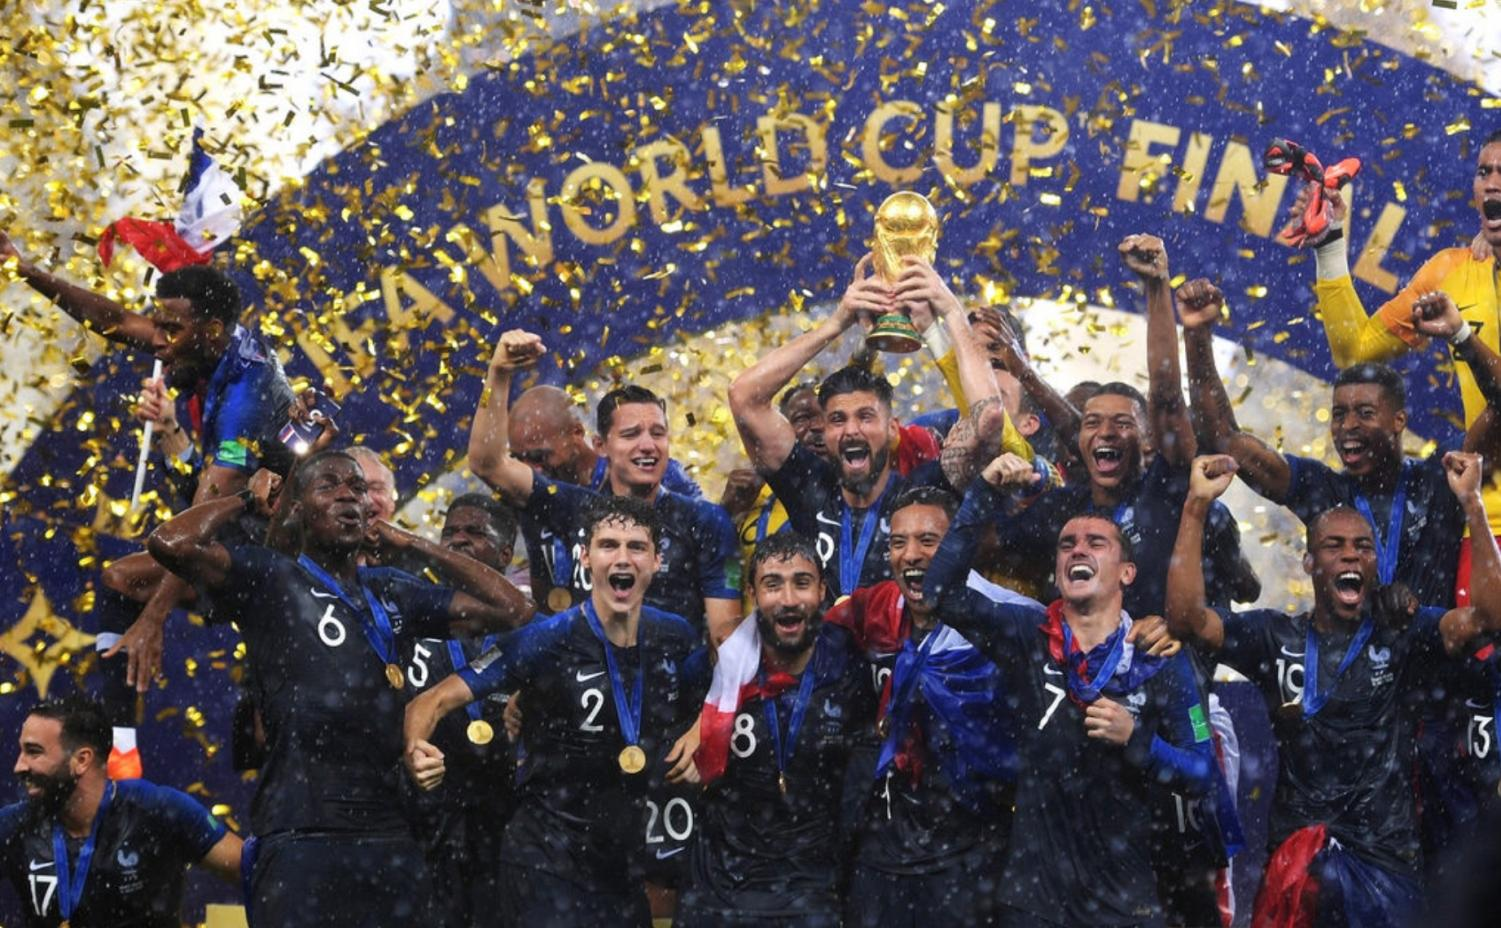 France celebrates after bringing home the cup.